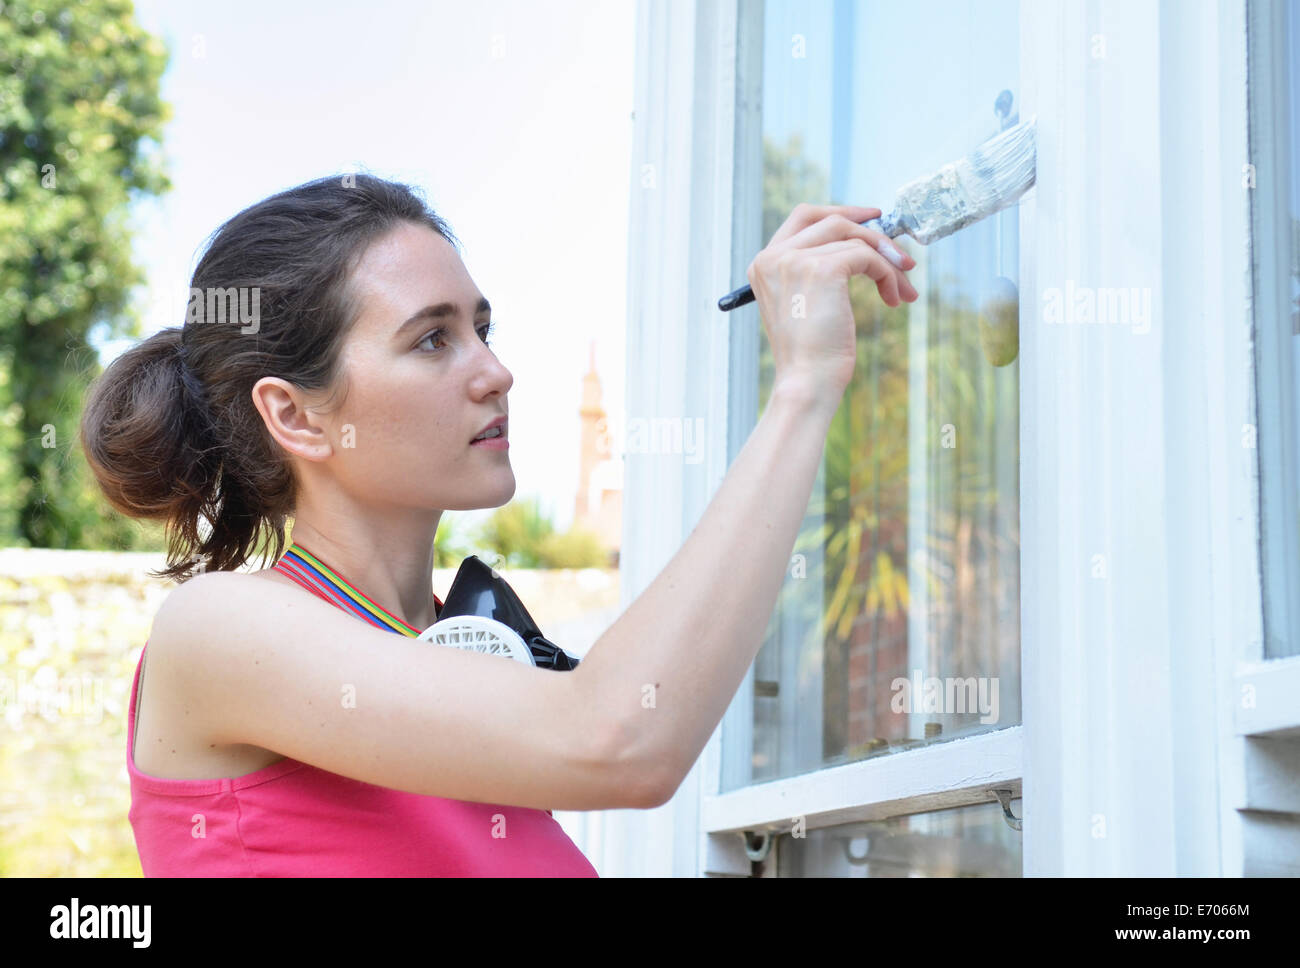 Young woman painting window of house - Stock Image